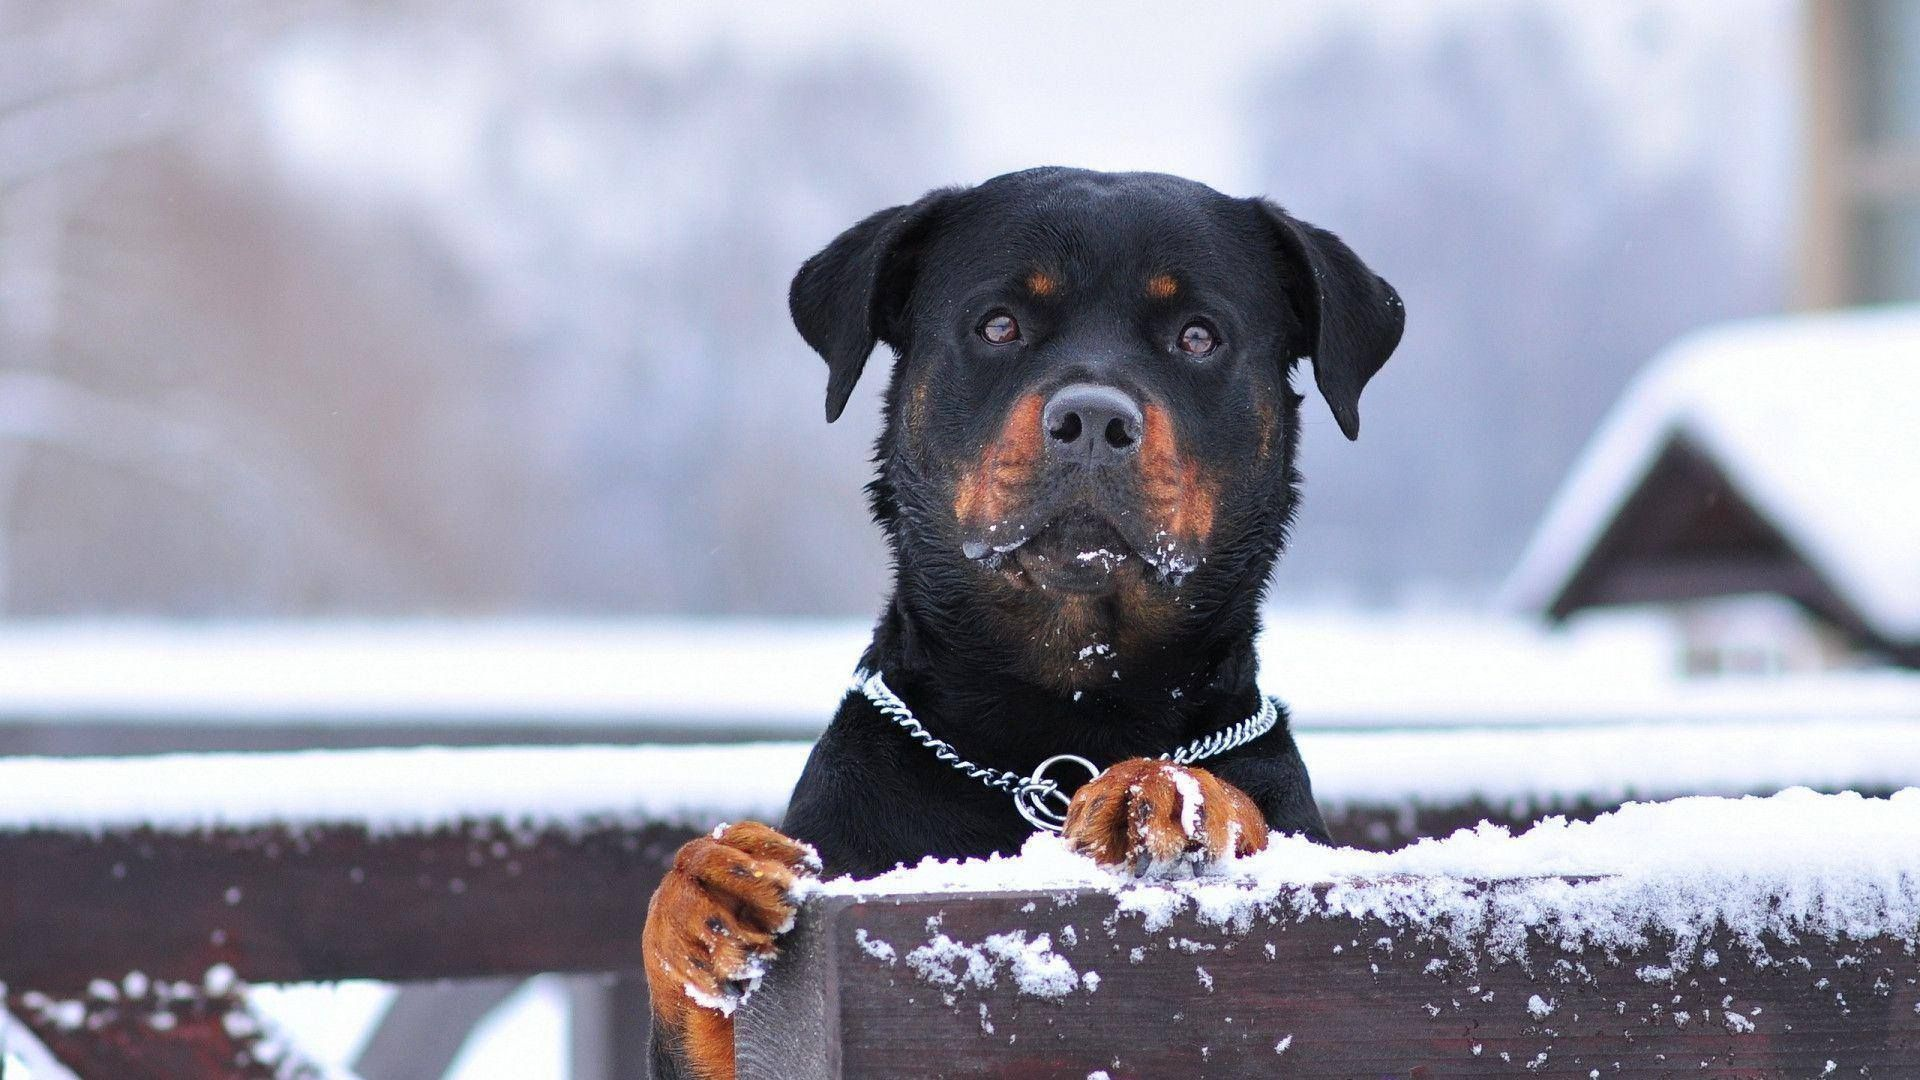 Pin By Deepak Raj On Pets Rottweiler Dog Rottweiler Rottweiler